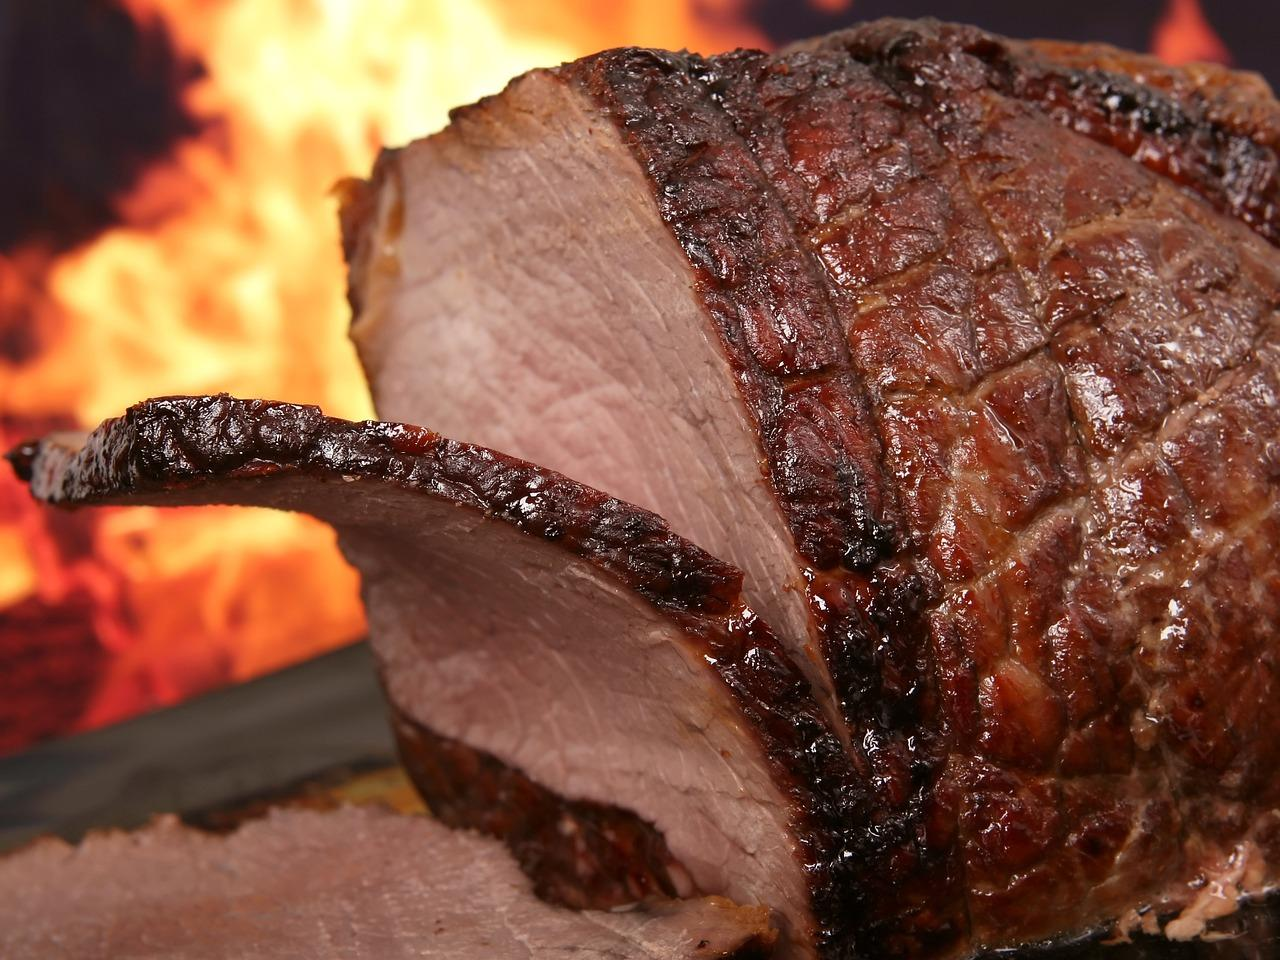 Eat less red meat? Scientists now believe that advice was wrong all along